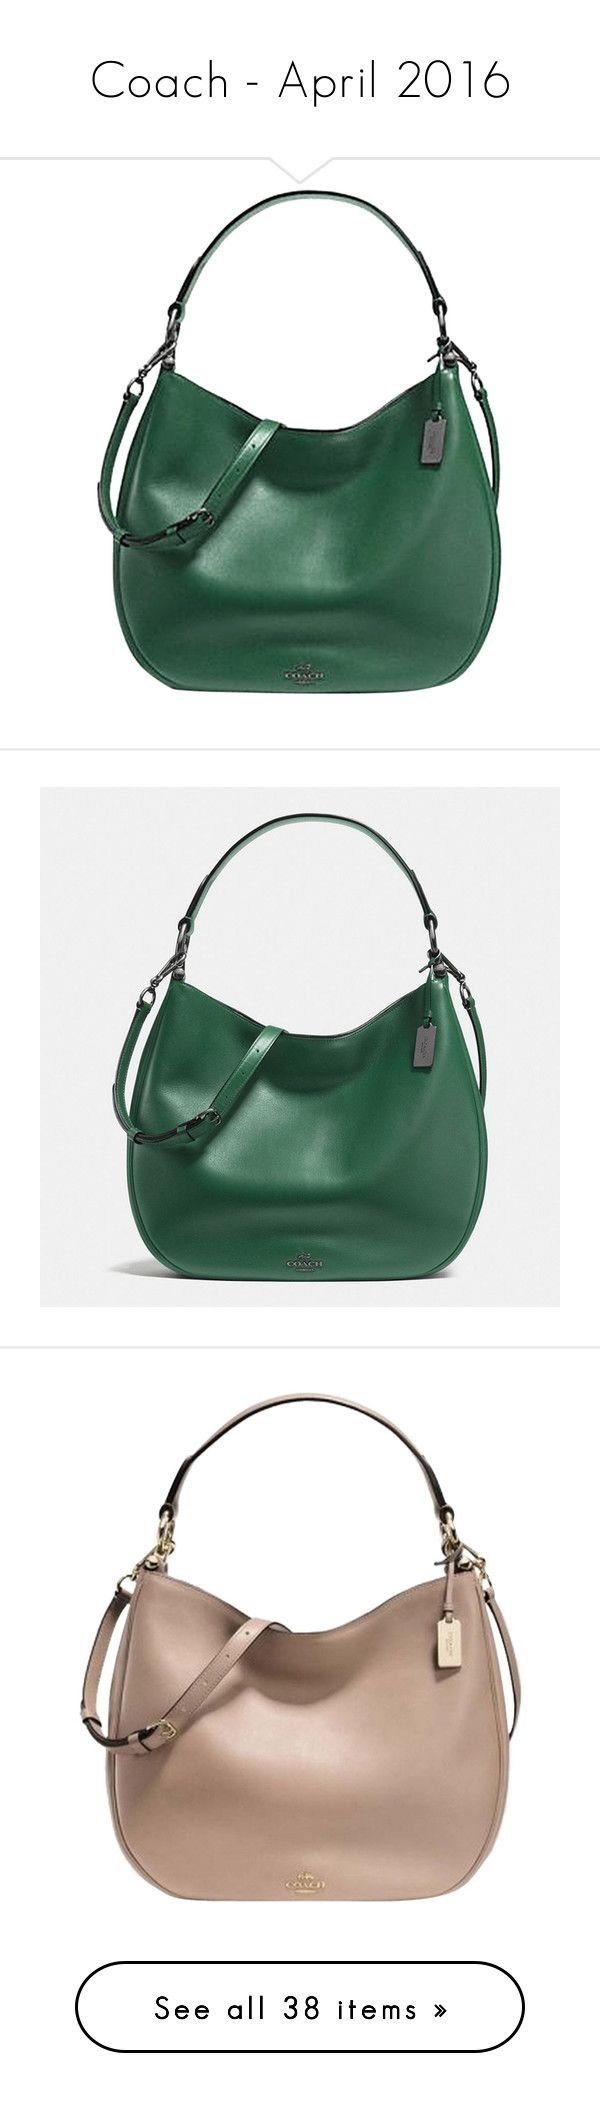 4559k Lime Leather Hobo Bag Hobobag Lime Shoulderbag Lime -  coach april 2016 by lynnspinterest liked on polyvore featuring bags handbags